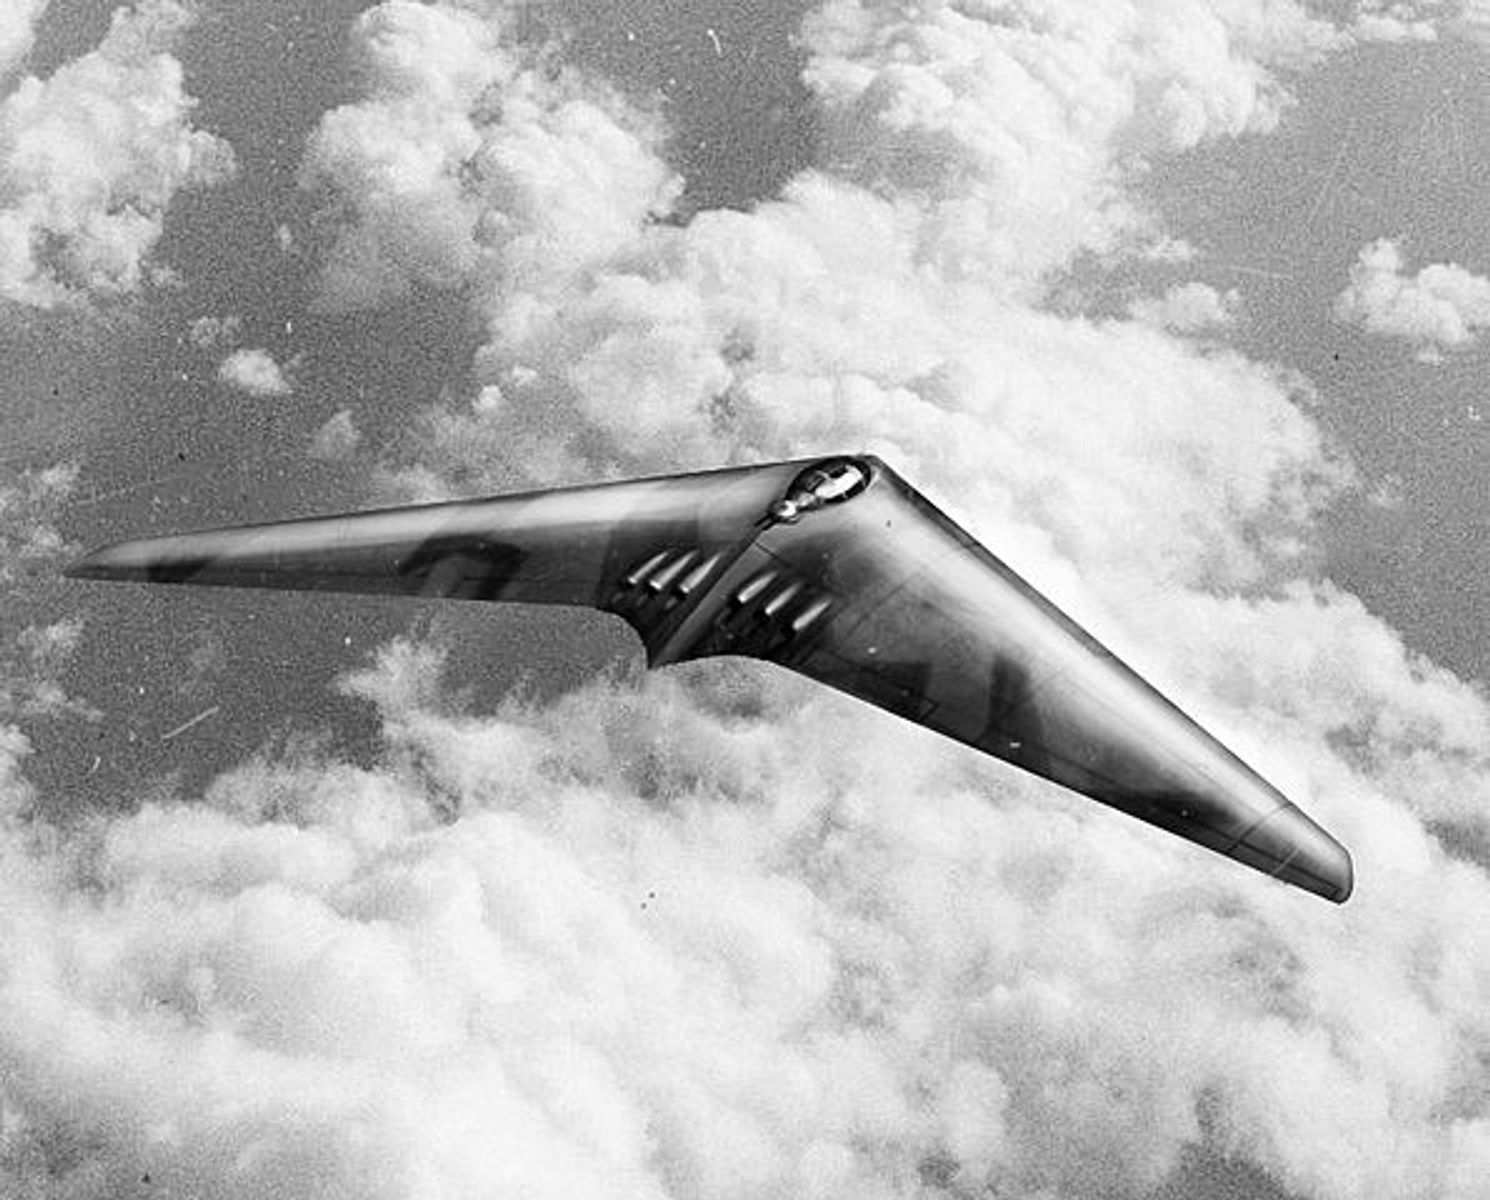 The Horten Ho. XVIII: The Flying Wing Bomber Nazi Germany Planned to Use to Bomb New York